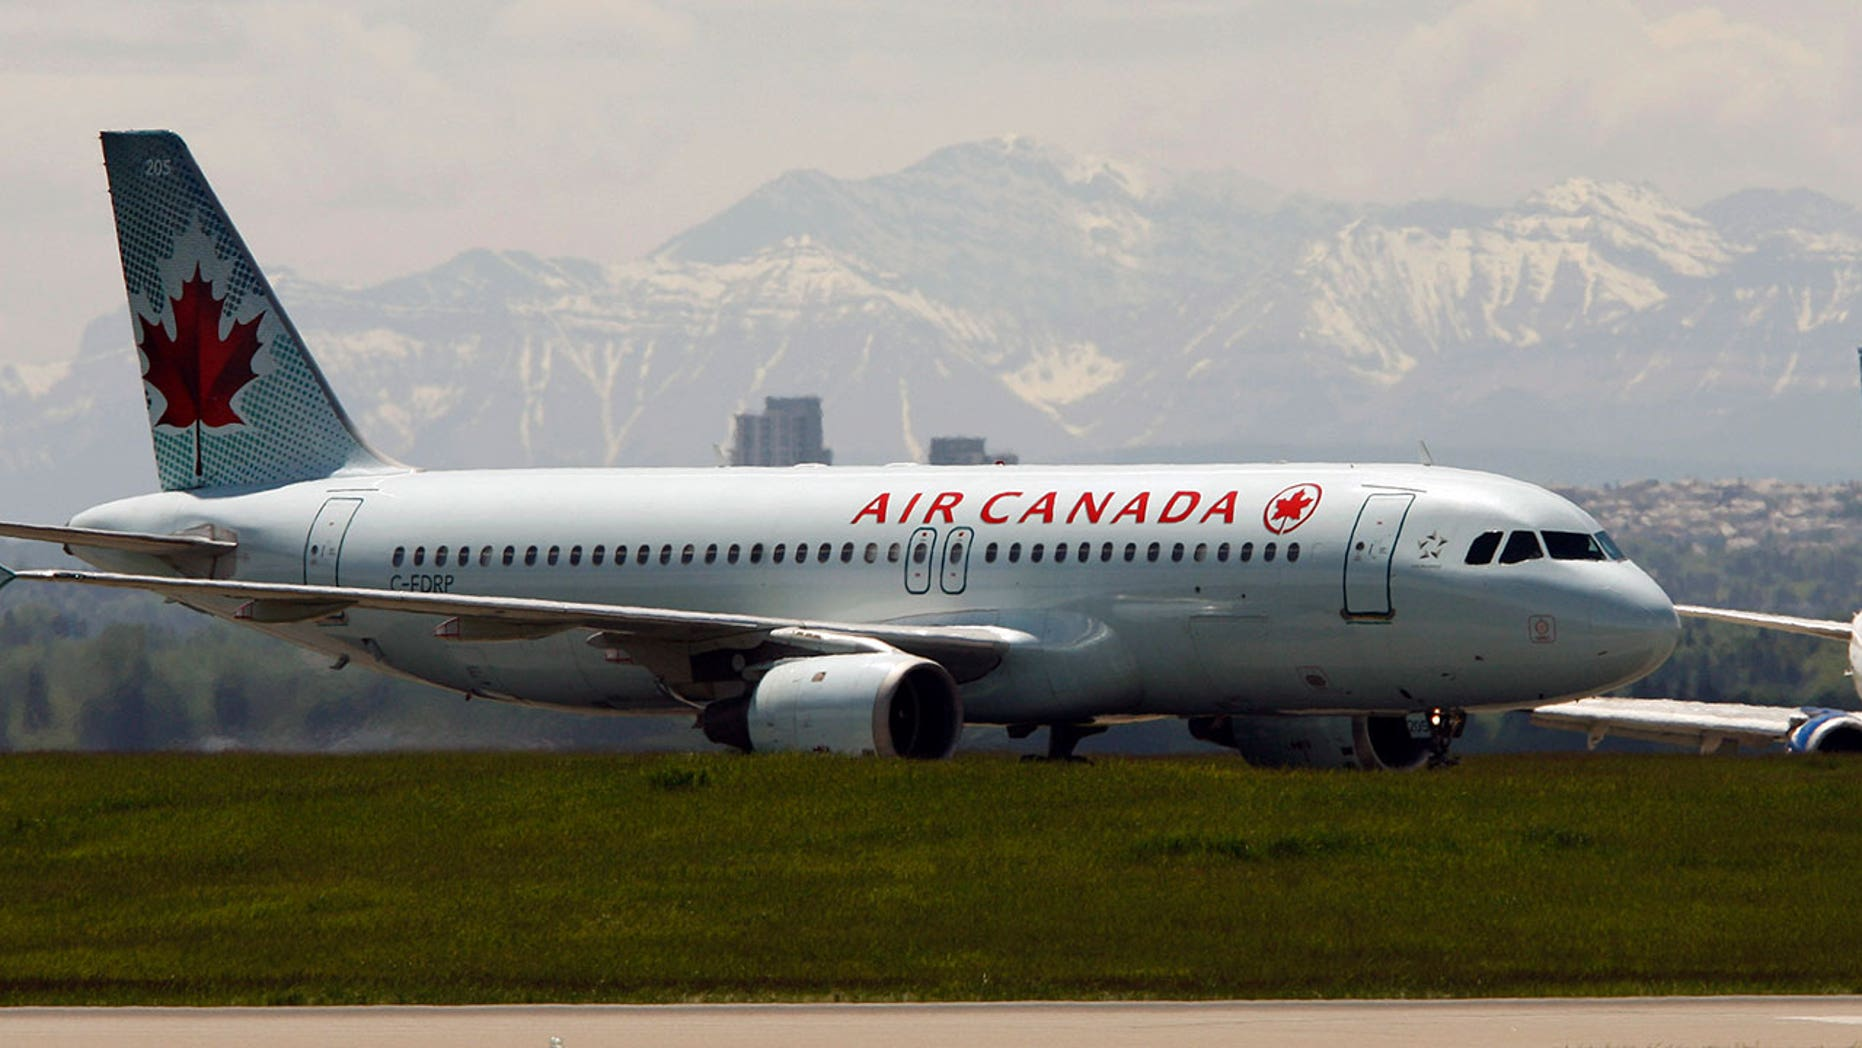 A fellow passenger on the Air Canada flight said the man ran up and down the aisles before punching the flight attendant.